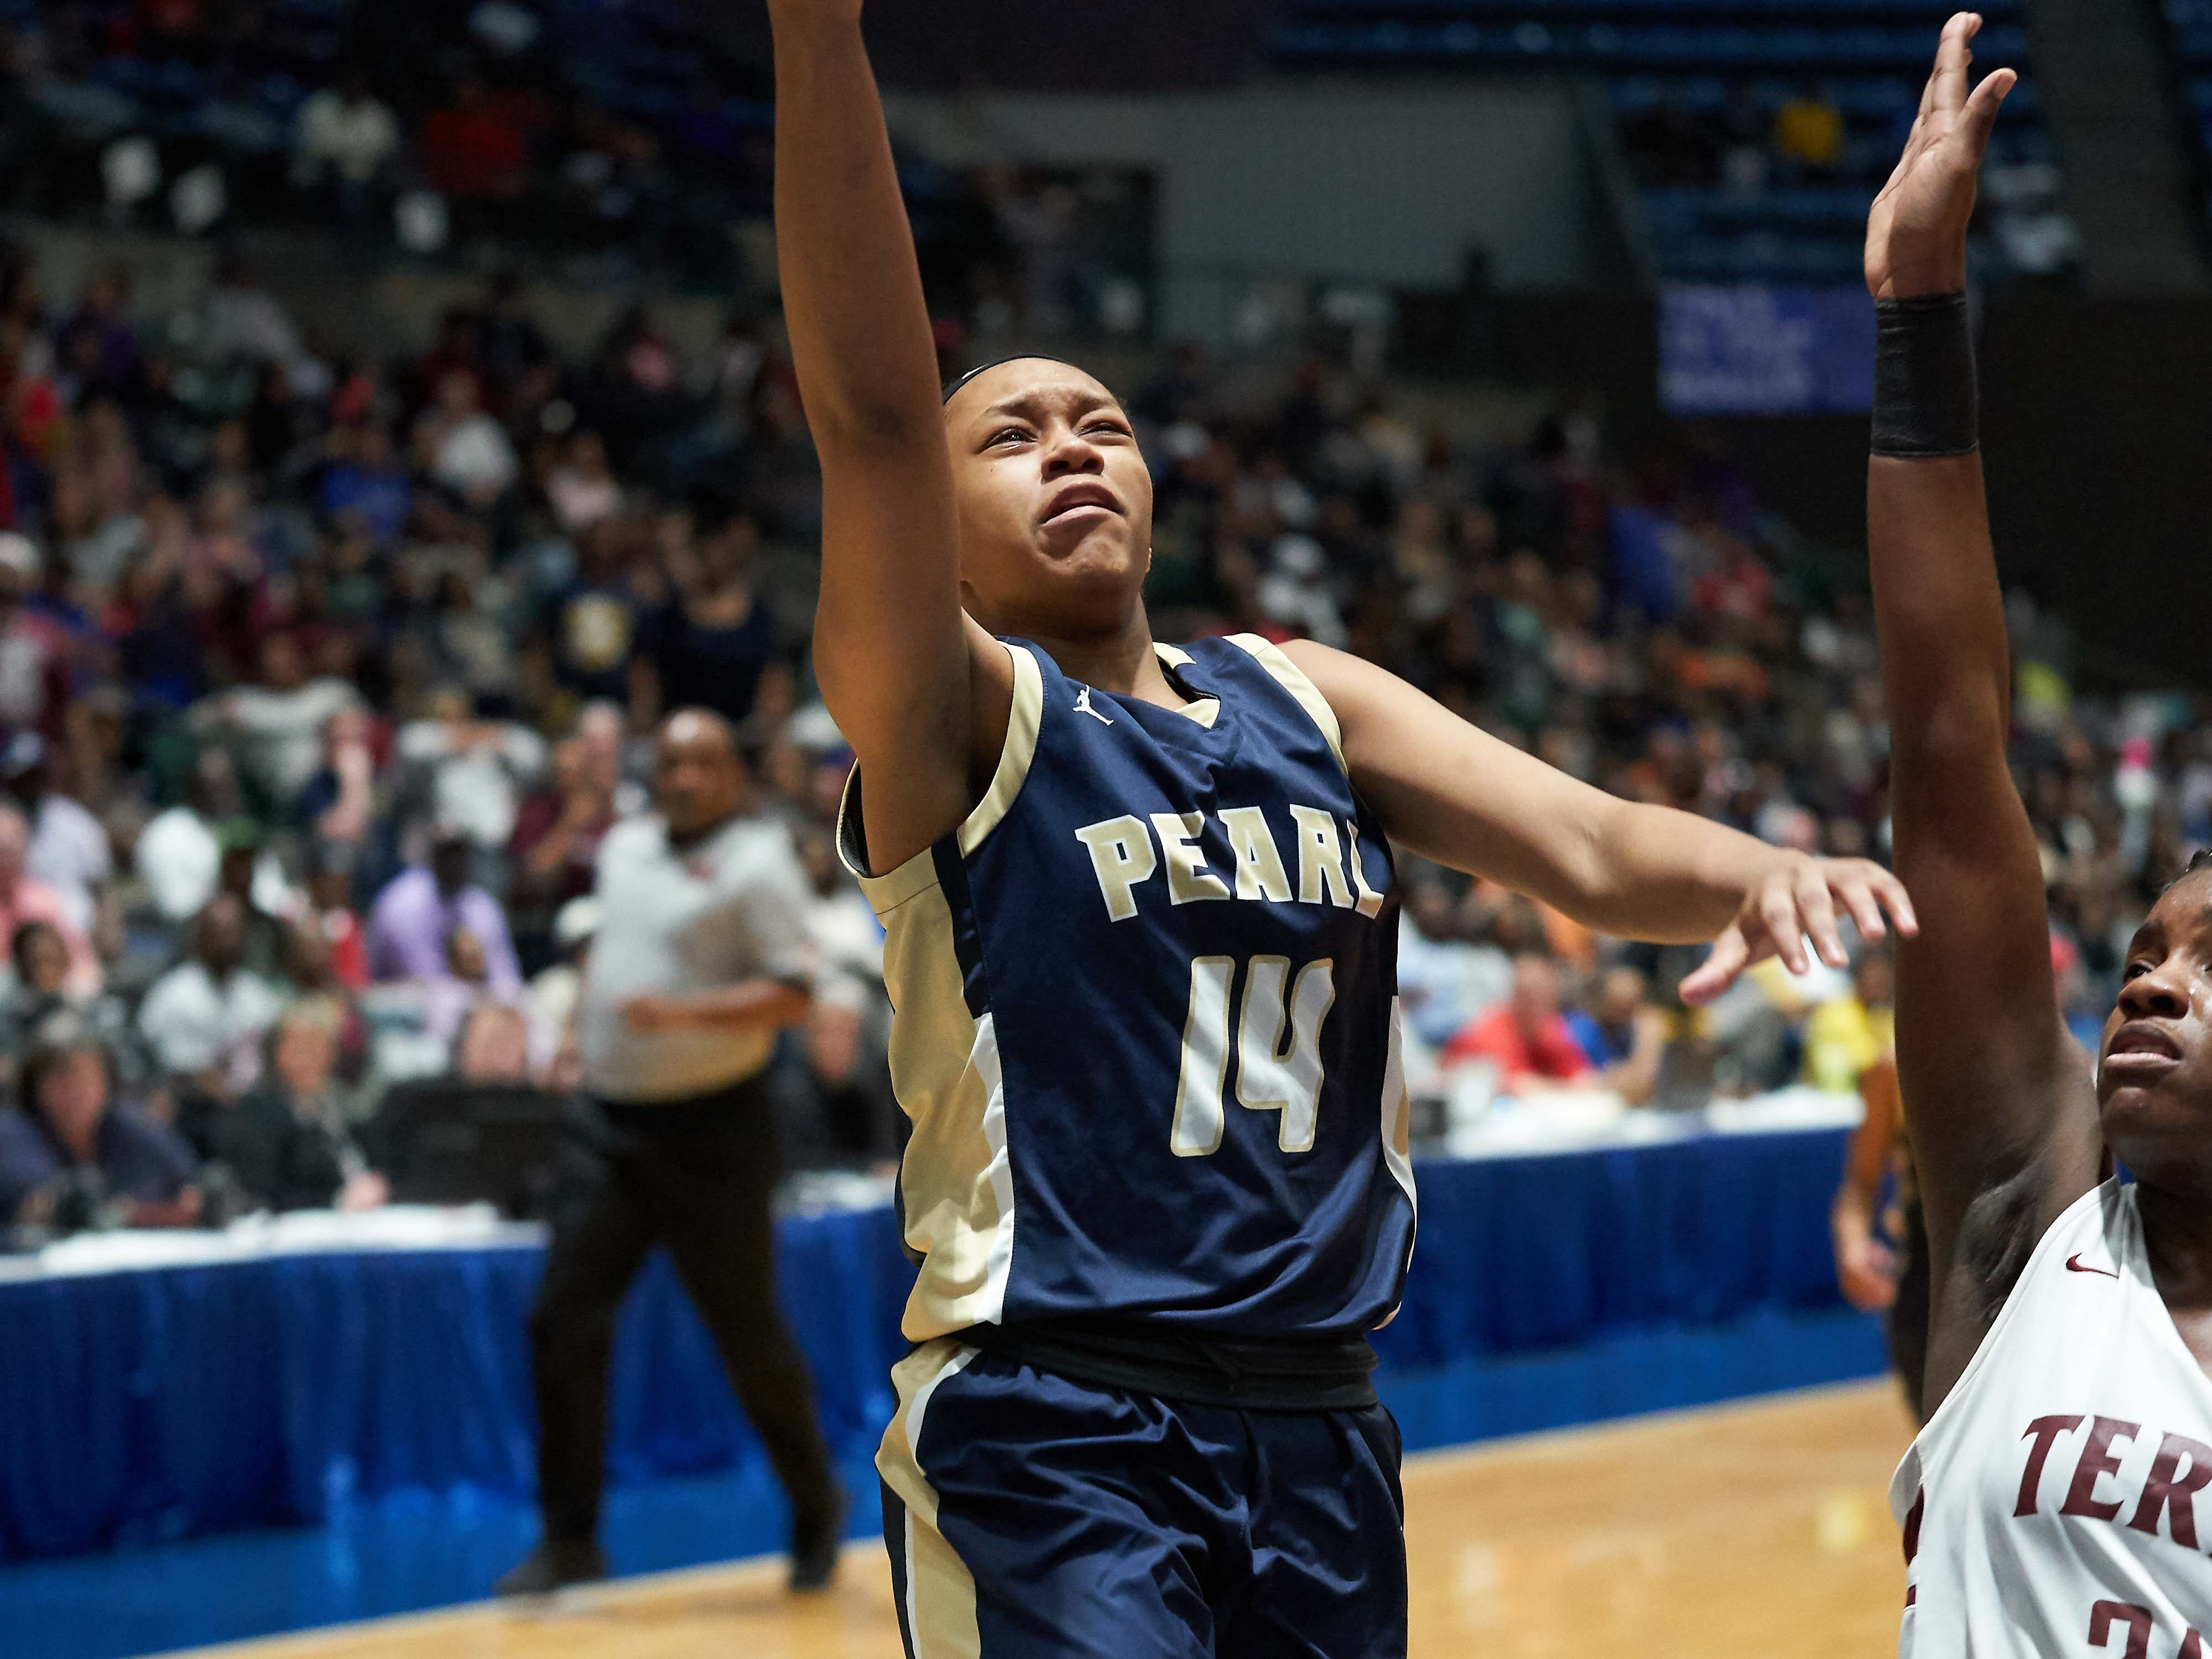 Pearl's Kaliya Taylor (14) glides in for a layup against Terry during the MHSAA 6A Girls Basketball Championship Finals held at the Mississippi Coliseum in Jackson, MS, Saturday March 9th, 2019.(Bob Smith)